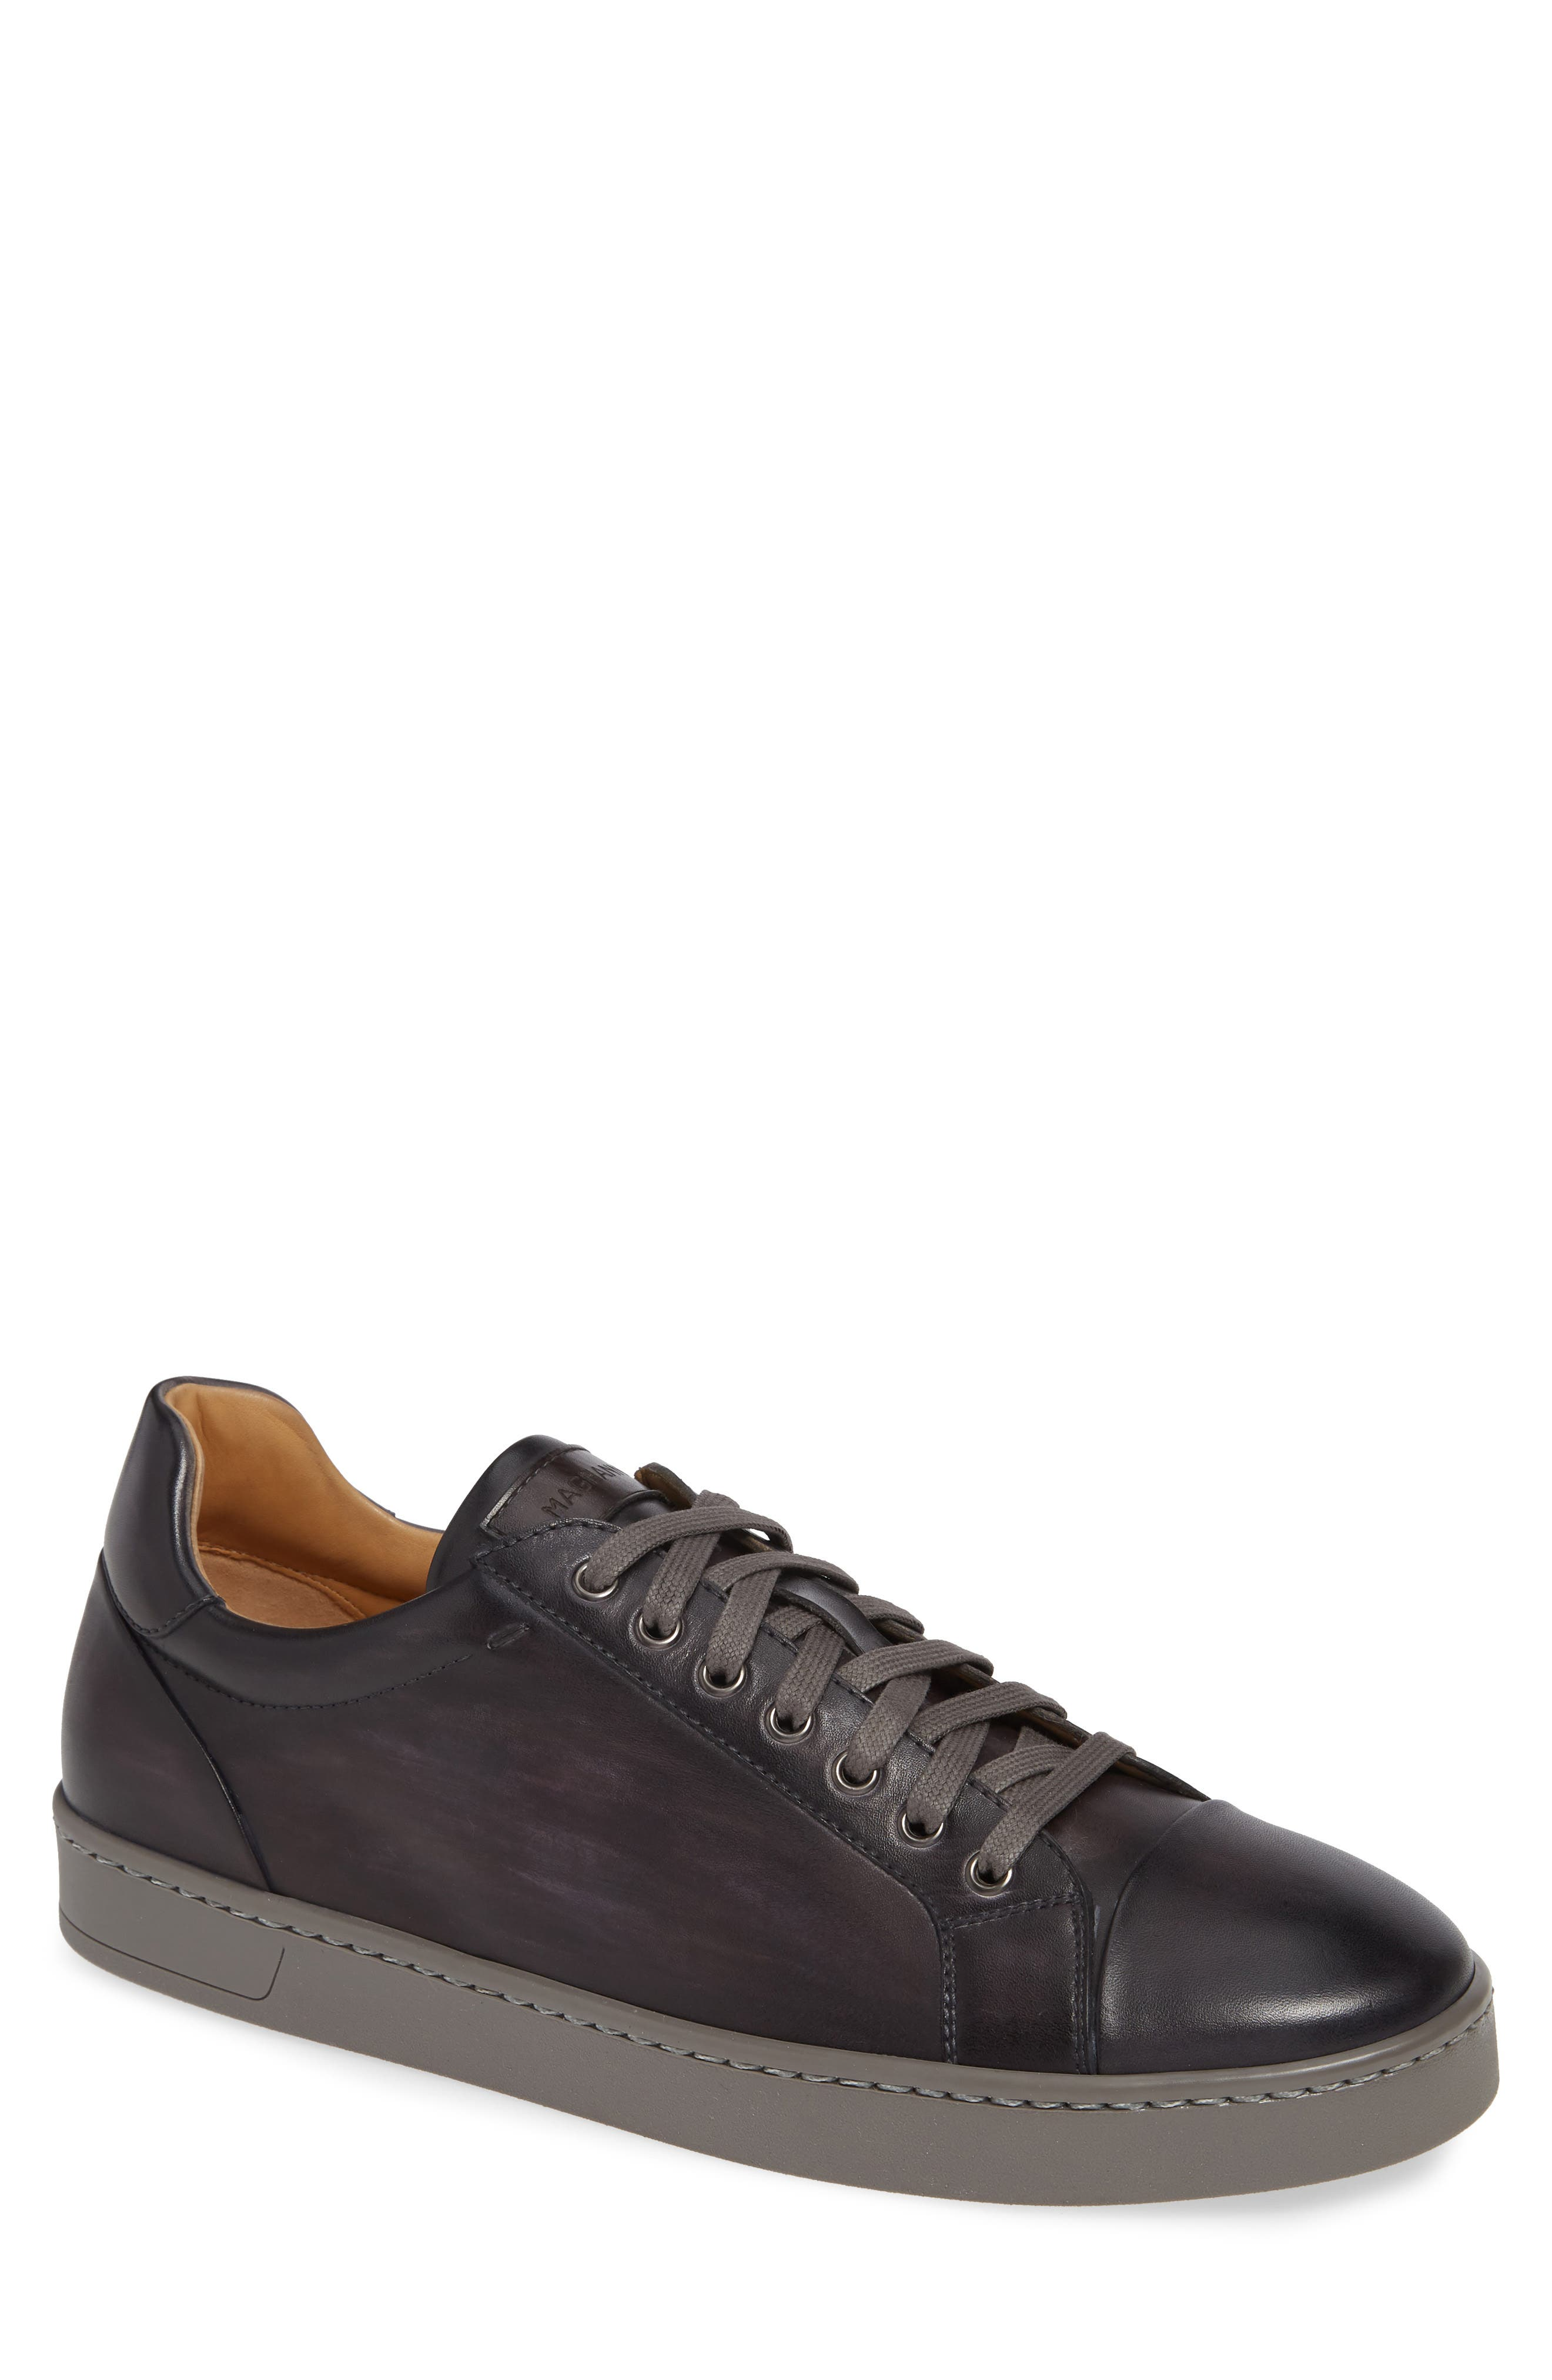 Caitin Sneaker,                             Main thumbnail 1, color,                             GREY/ GREY LEATHER